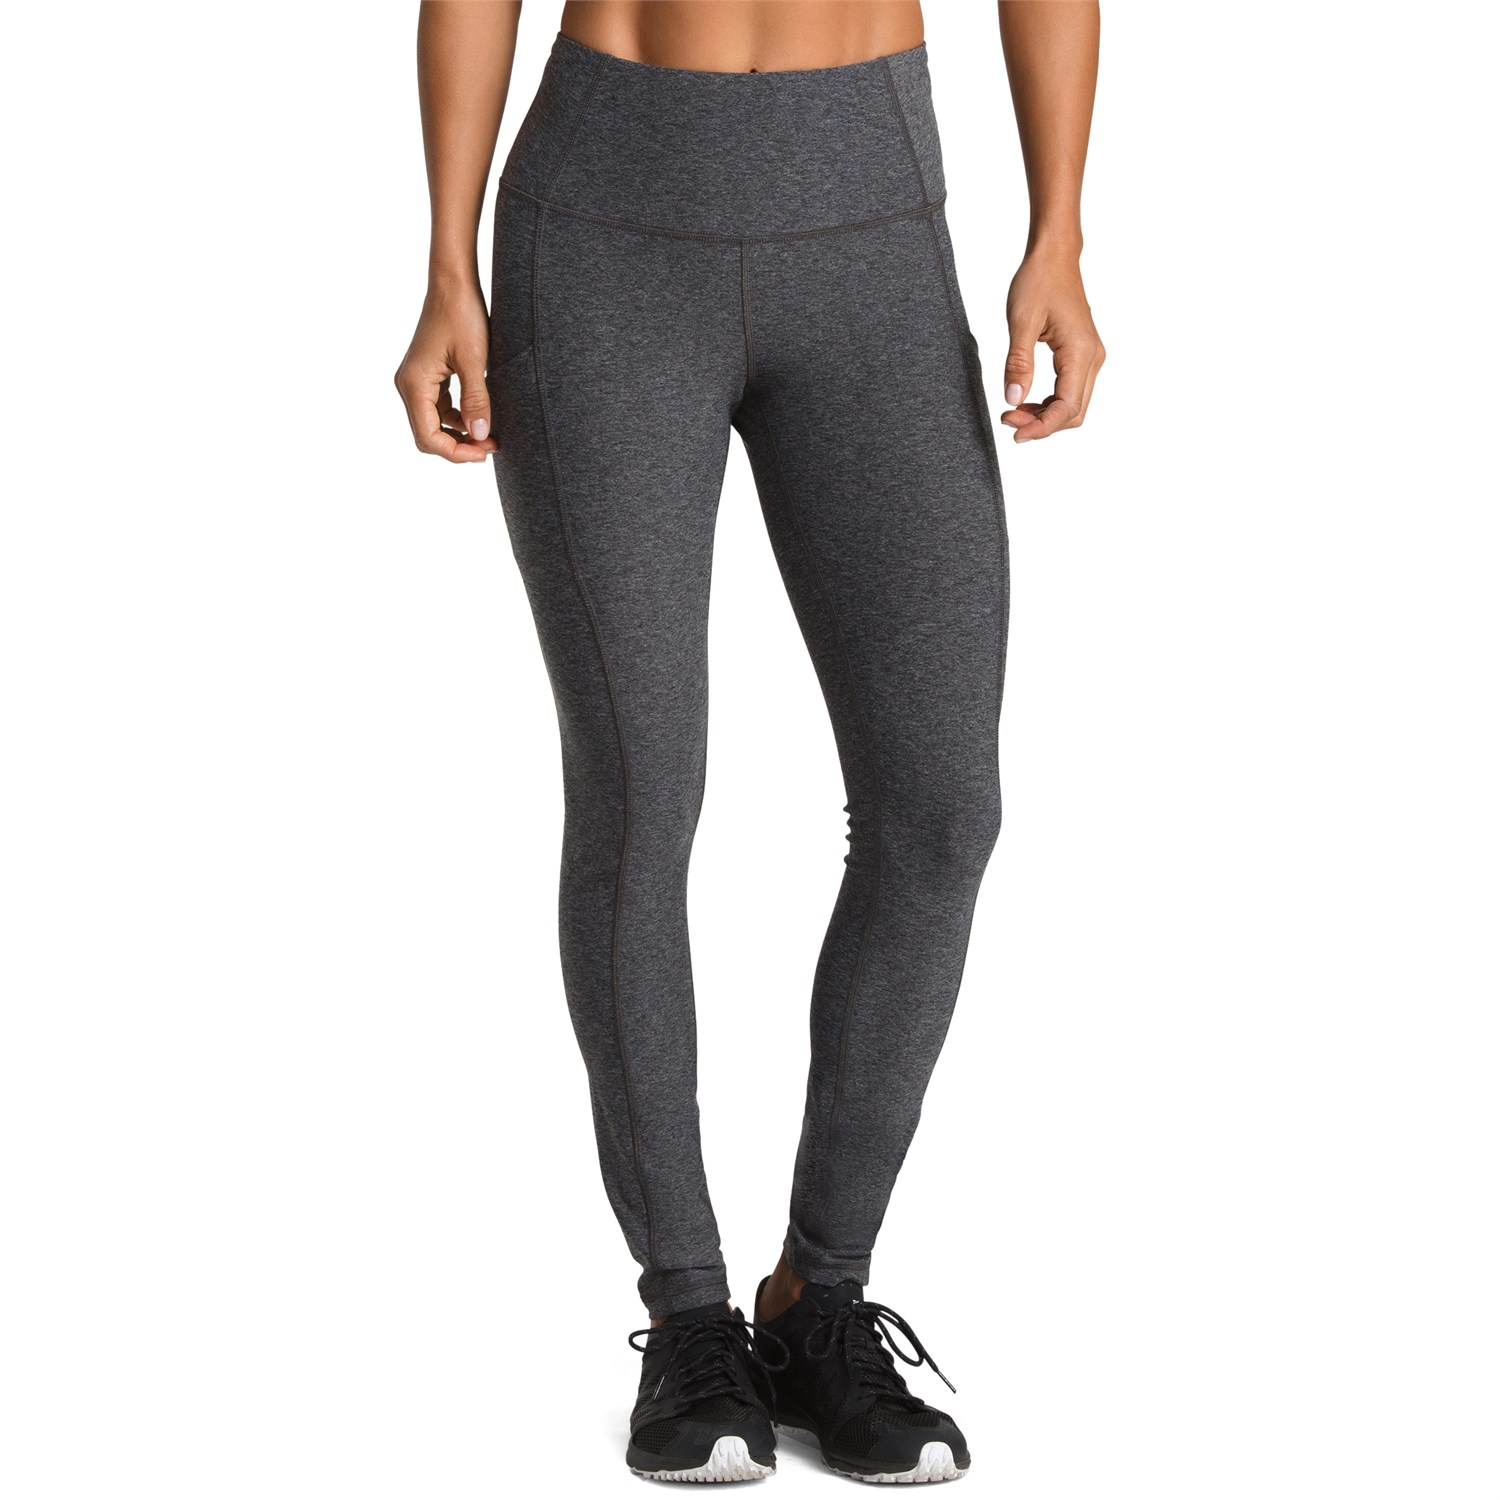 c7e0c541ae The North Face Motivation High-Rise Pocket Tights - Women's | evo